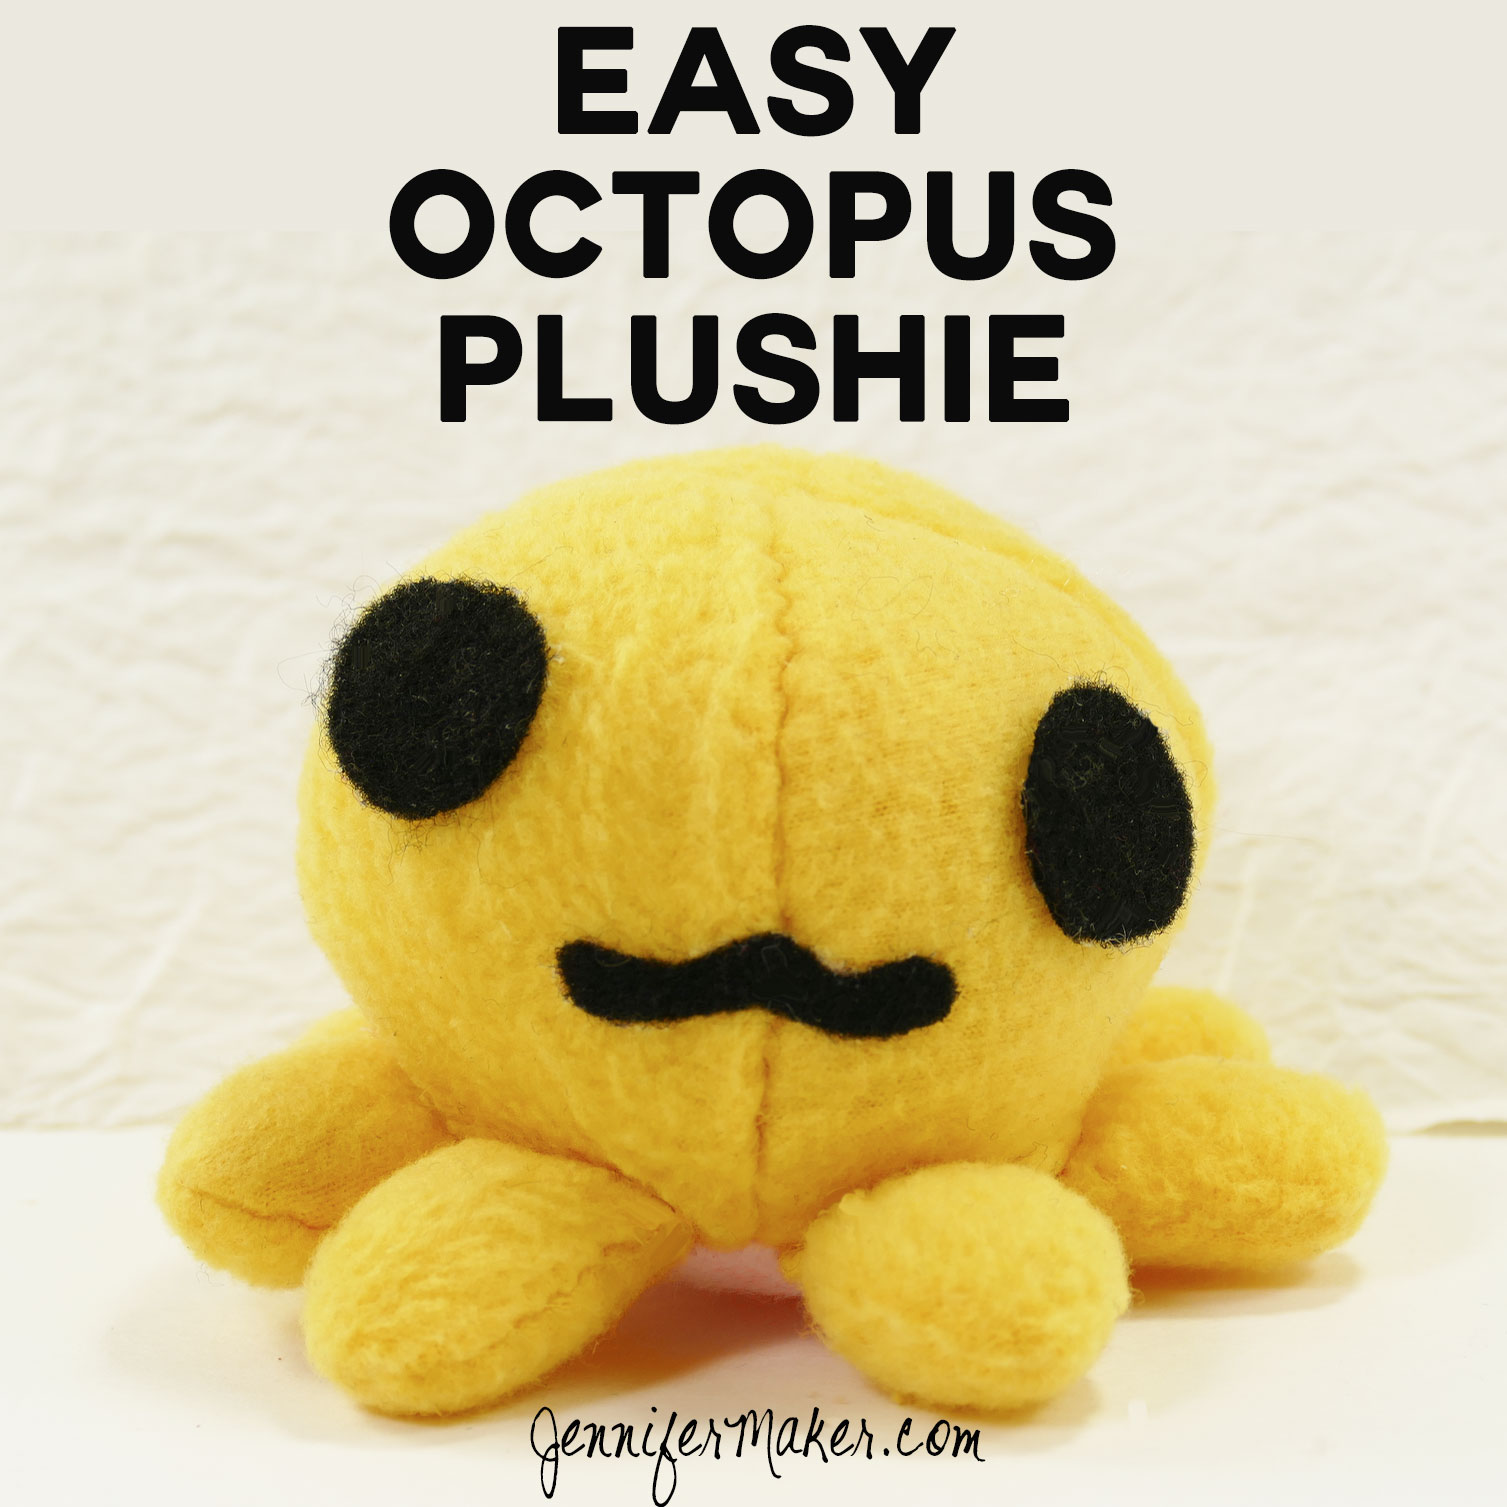 Make this easy octopus plushie | free pattern and tutorial